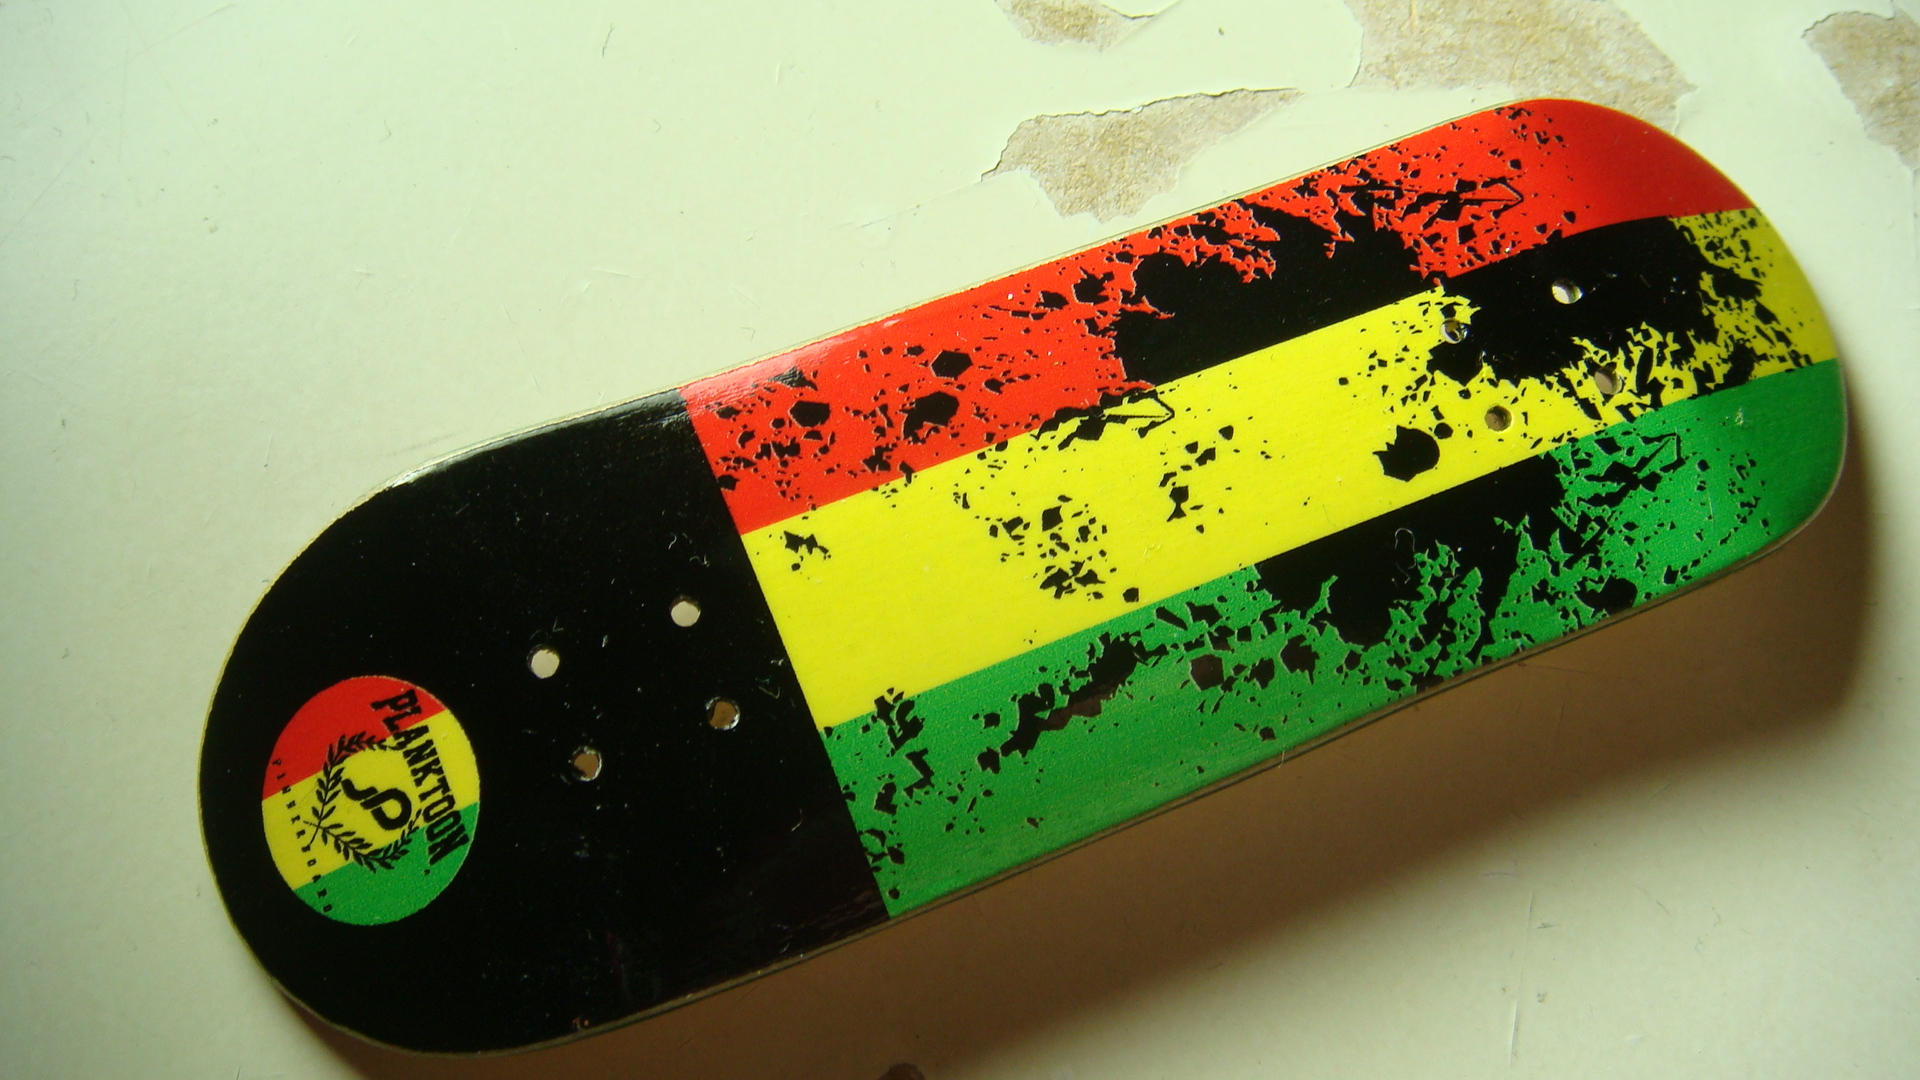 Fingerboard tv daily fingerboard news you voltagebd Choice Image